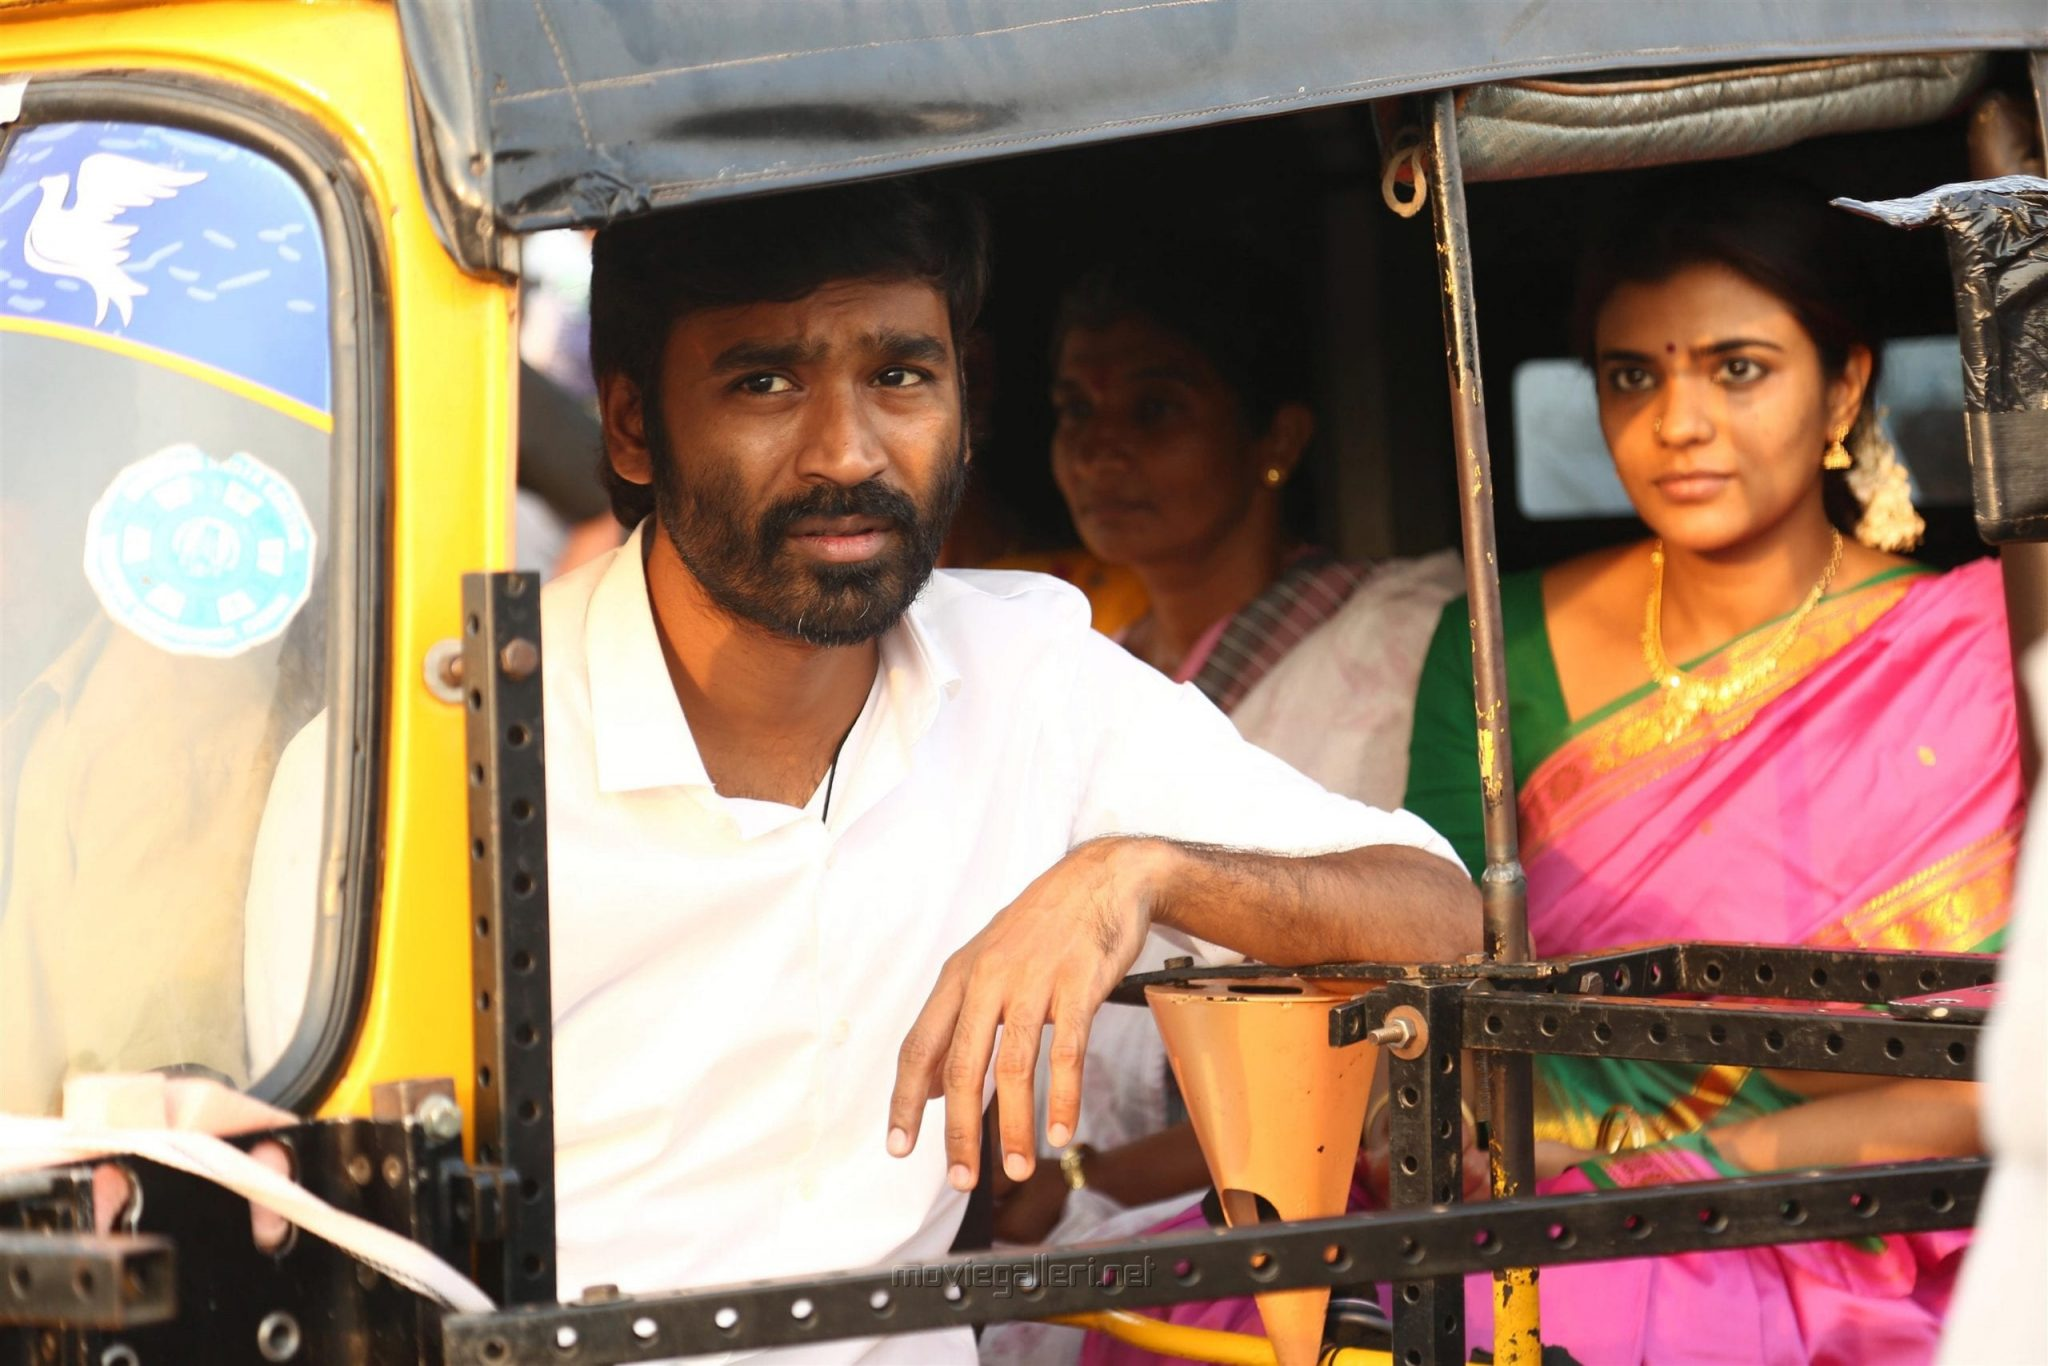 Vada Chennai Review A Slice Of The Underworld That S Raw Yet Captivating